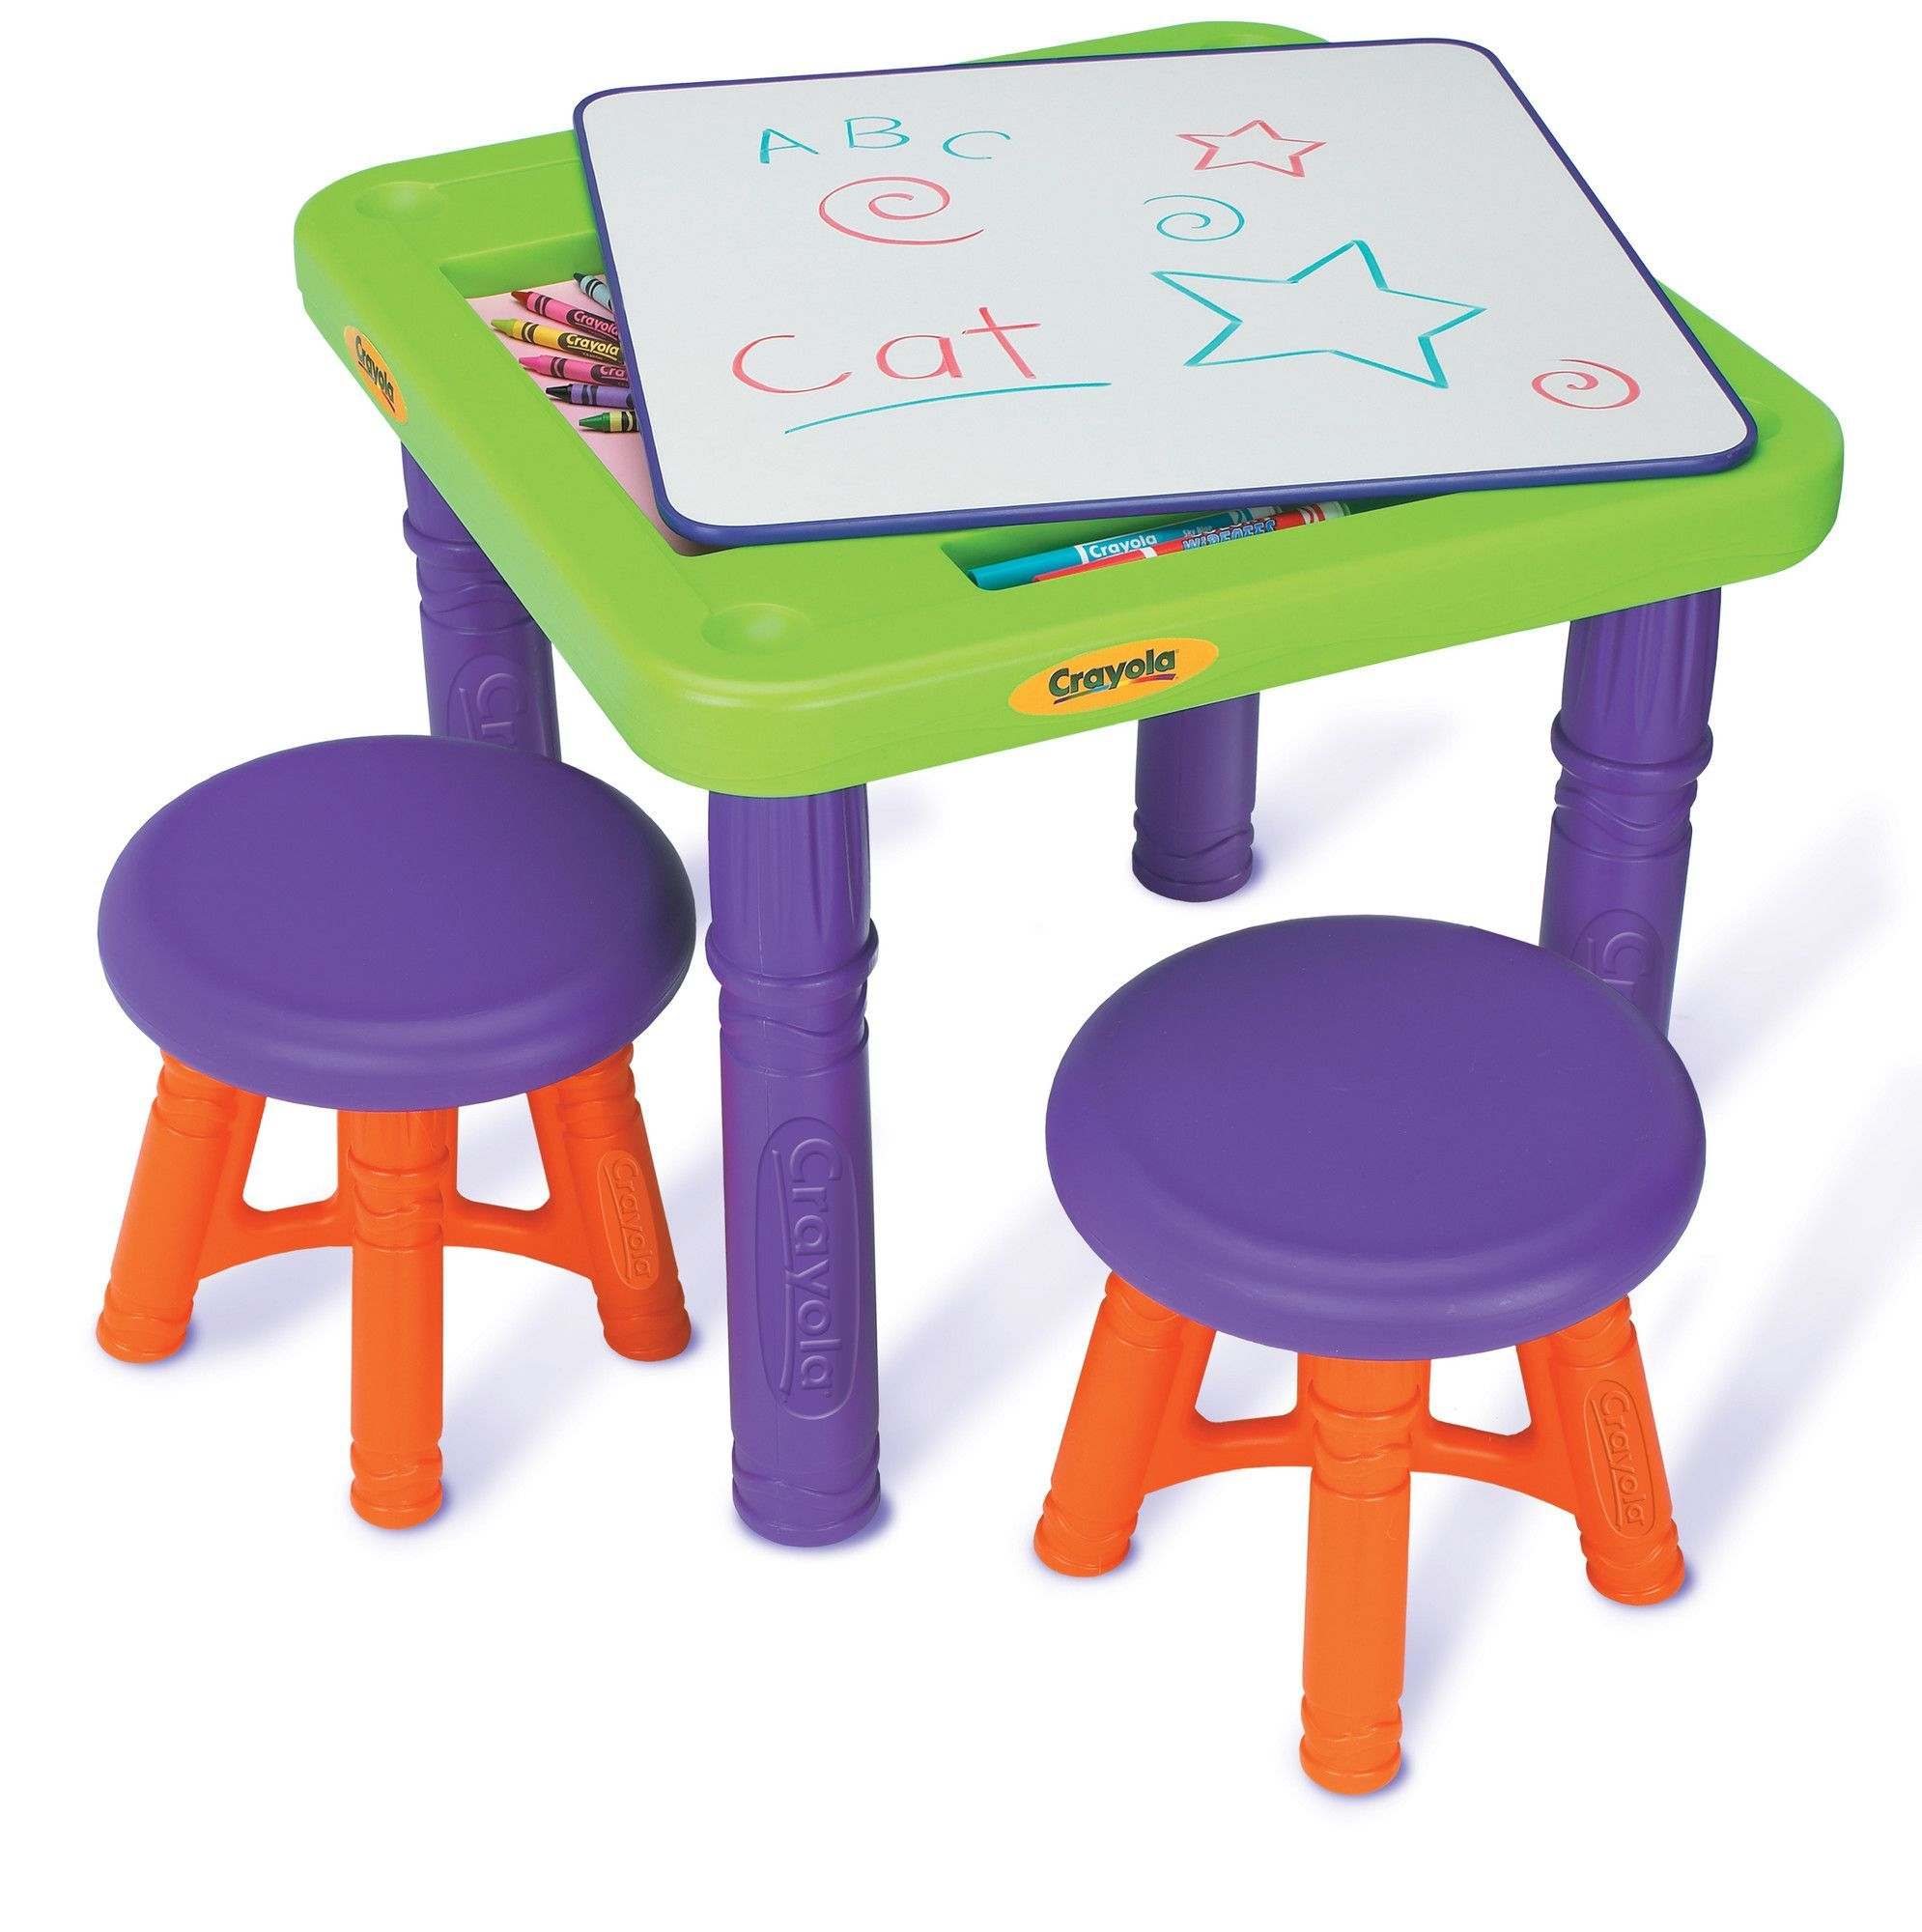 Crayola Sit N Draw Play Kids 3 Piece Table And Stool Set